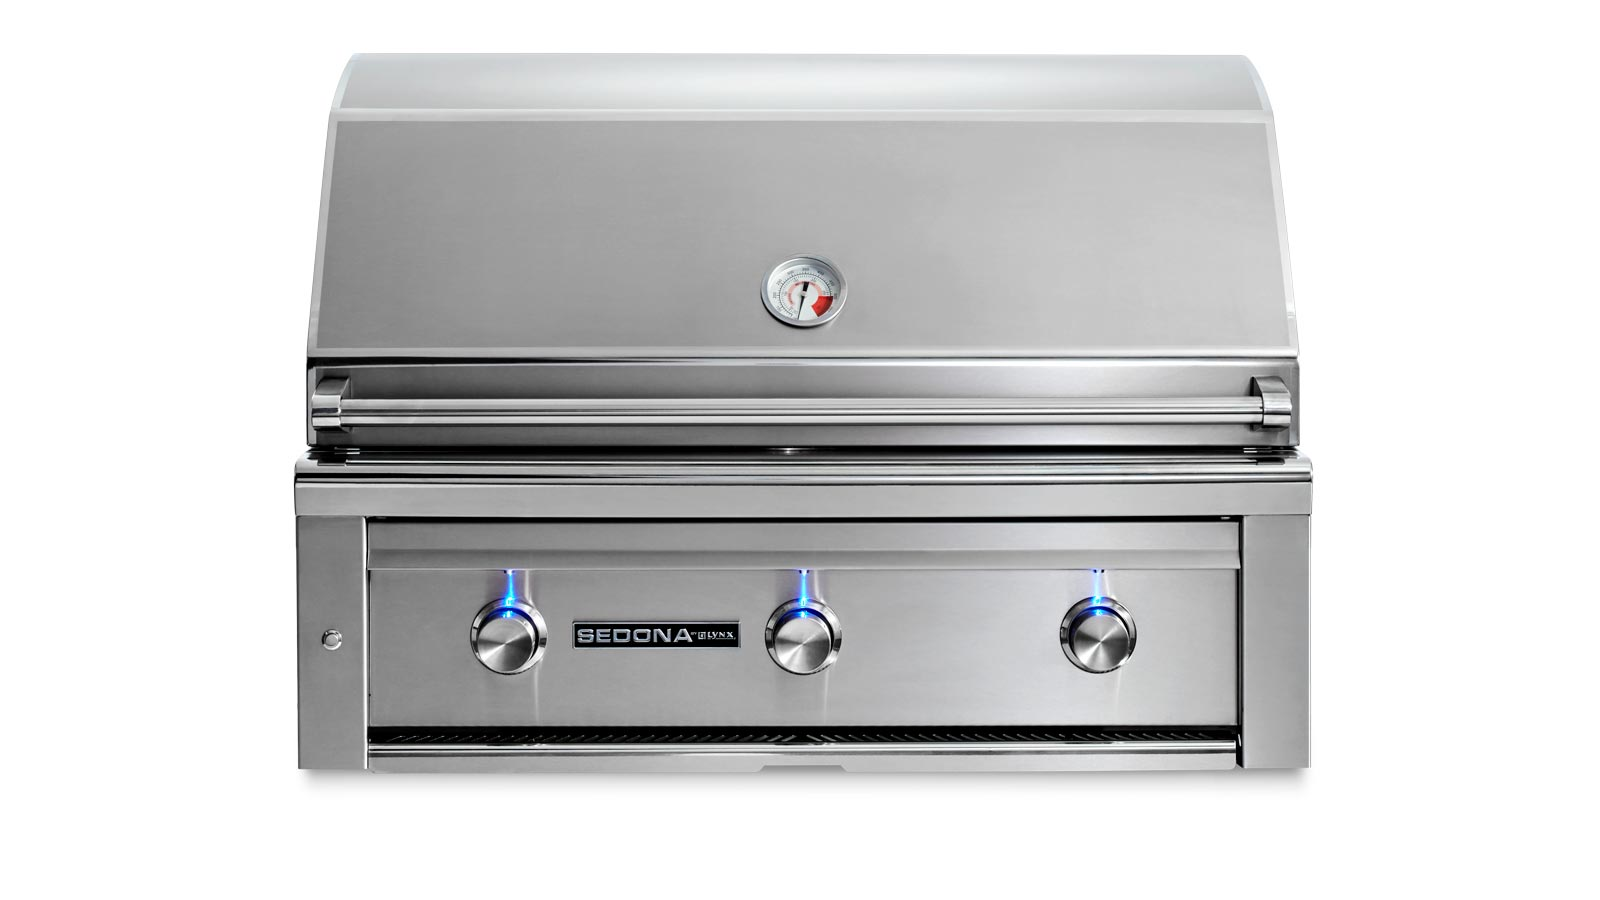 """Sedona by Lynx L600 36"""" Built-in Grill"""